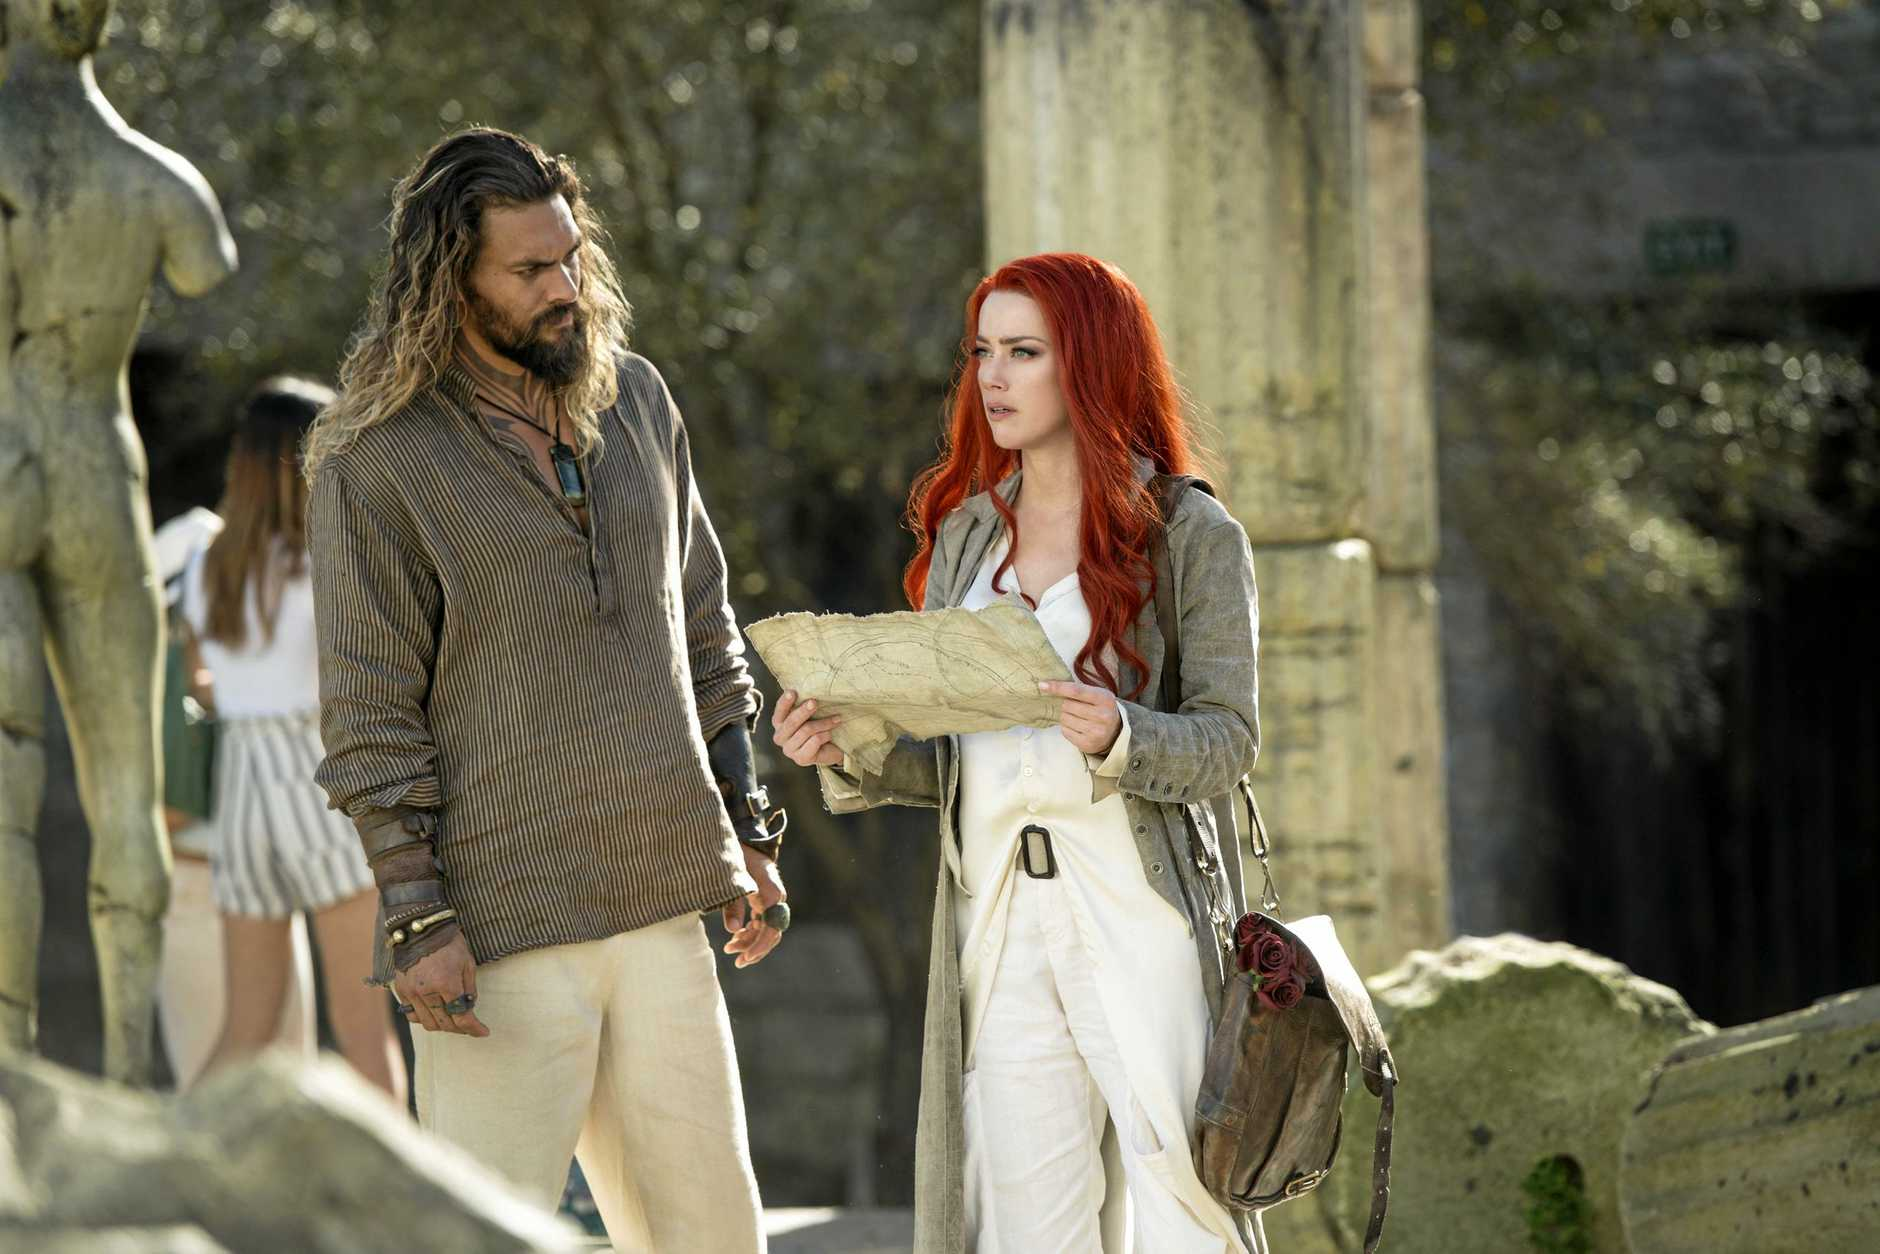 Jason Momoa and Amber Heard in a scene from the movie Aquaman. Supplied by Warner Bros.